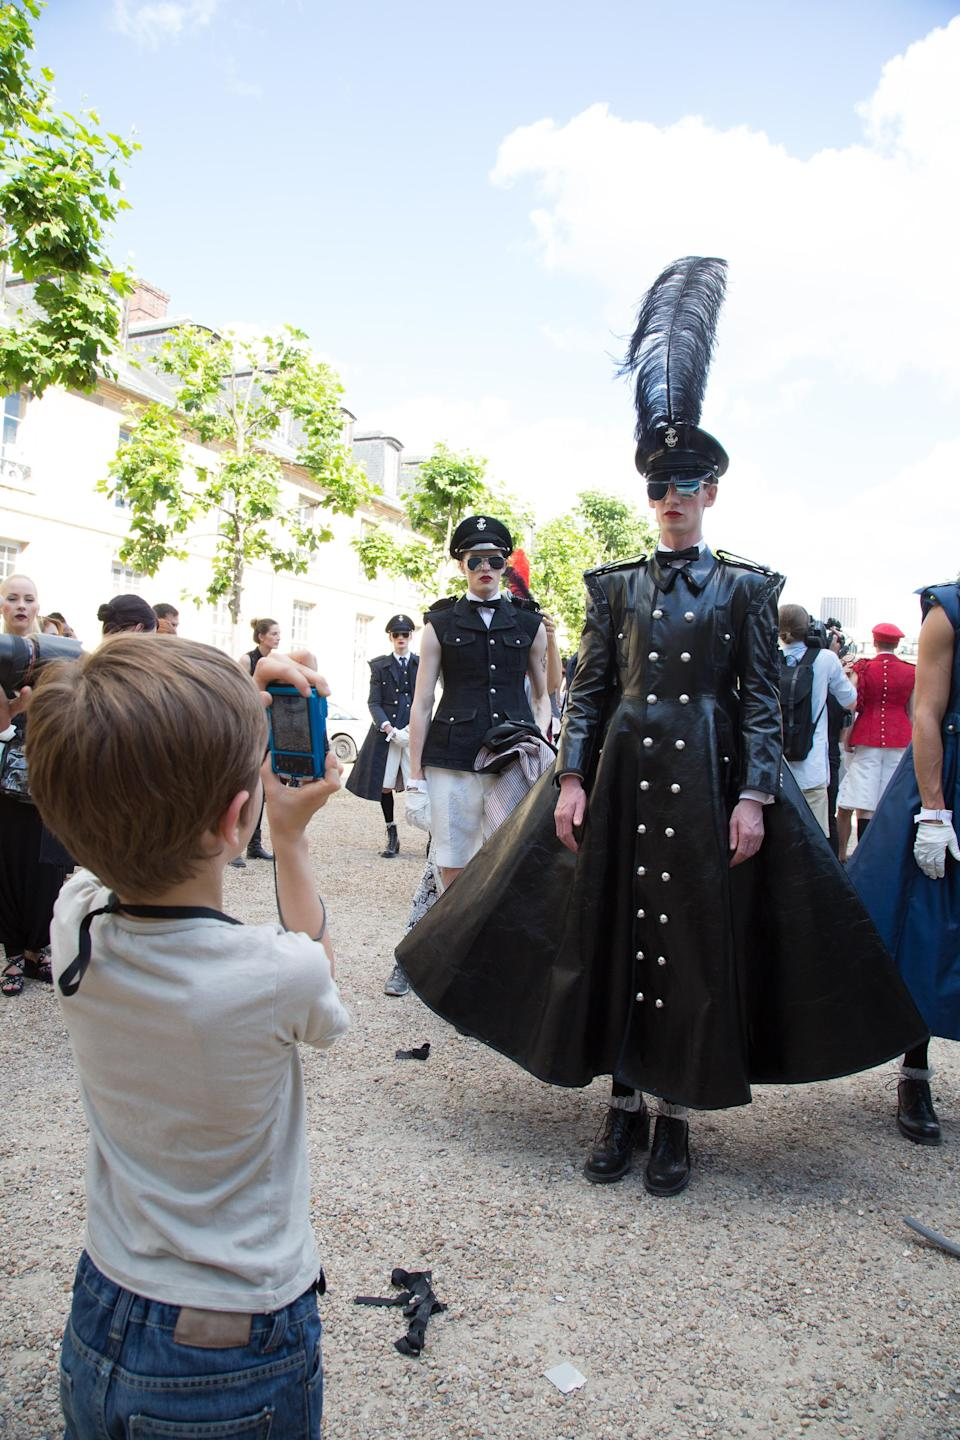 """<div class=""""caption-credit""""> Photo by: Victor Boyko/Getty Images</div>A brave child photographs yet another member of the Thom Browne militia. This one has wings, which probably means he's important. <br>"""